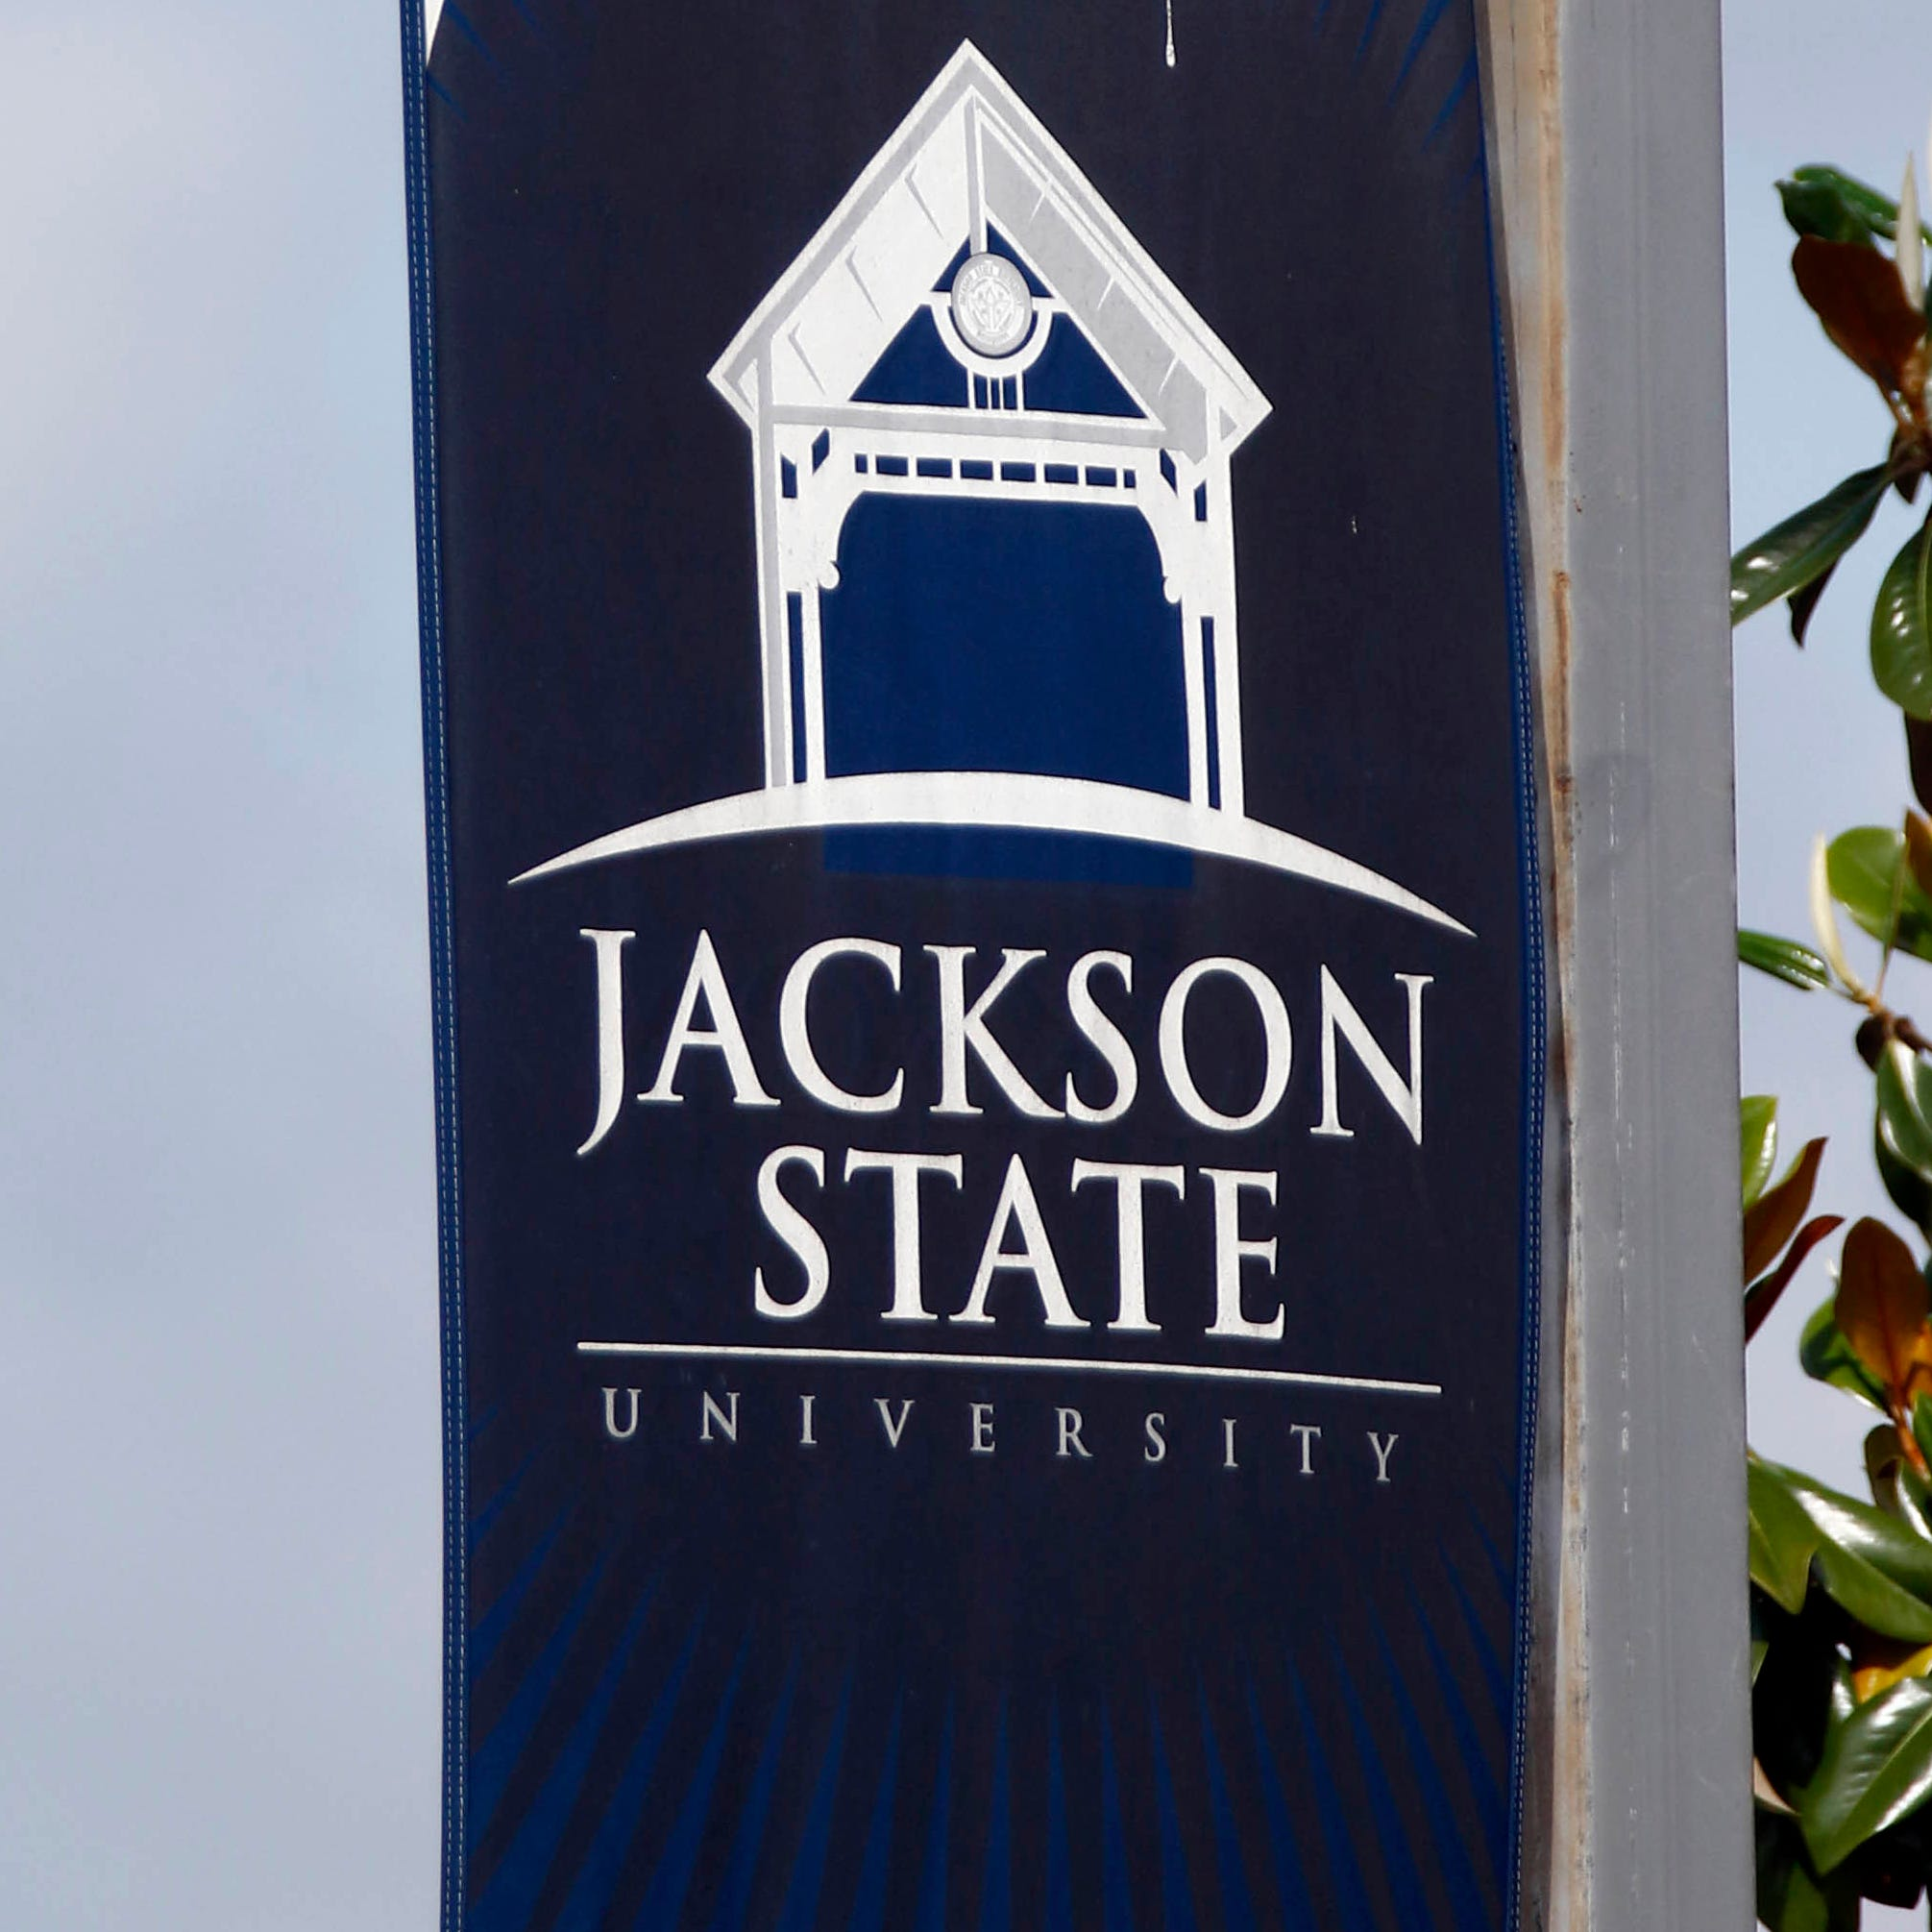 Are Jackson State University finances in order? School faces deadline to show problems fixed